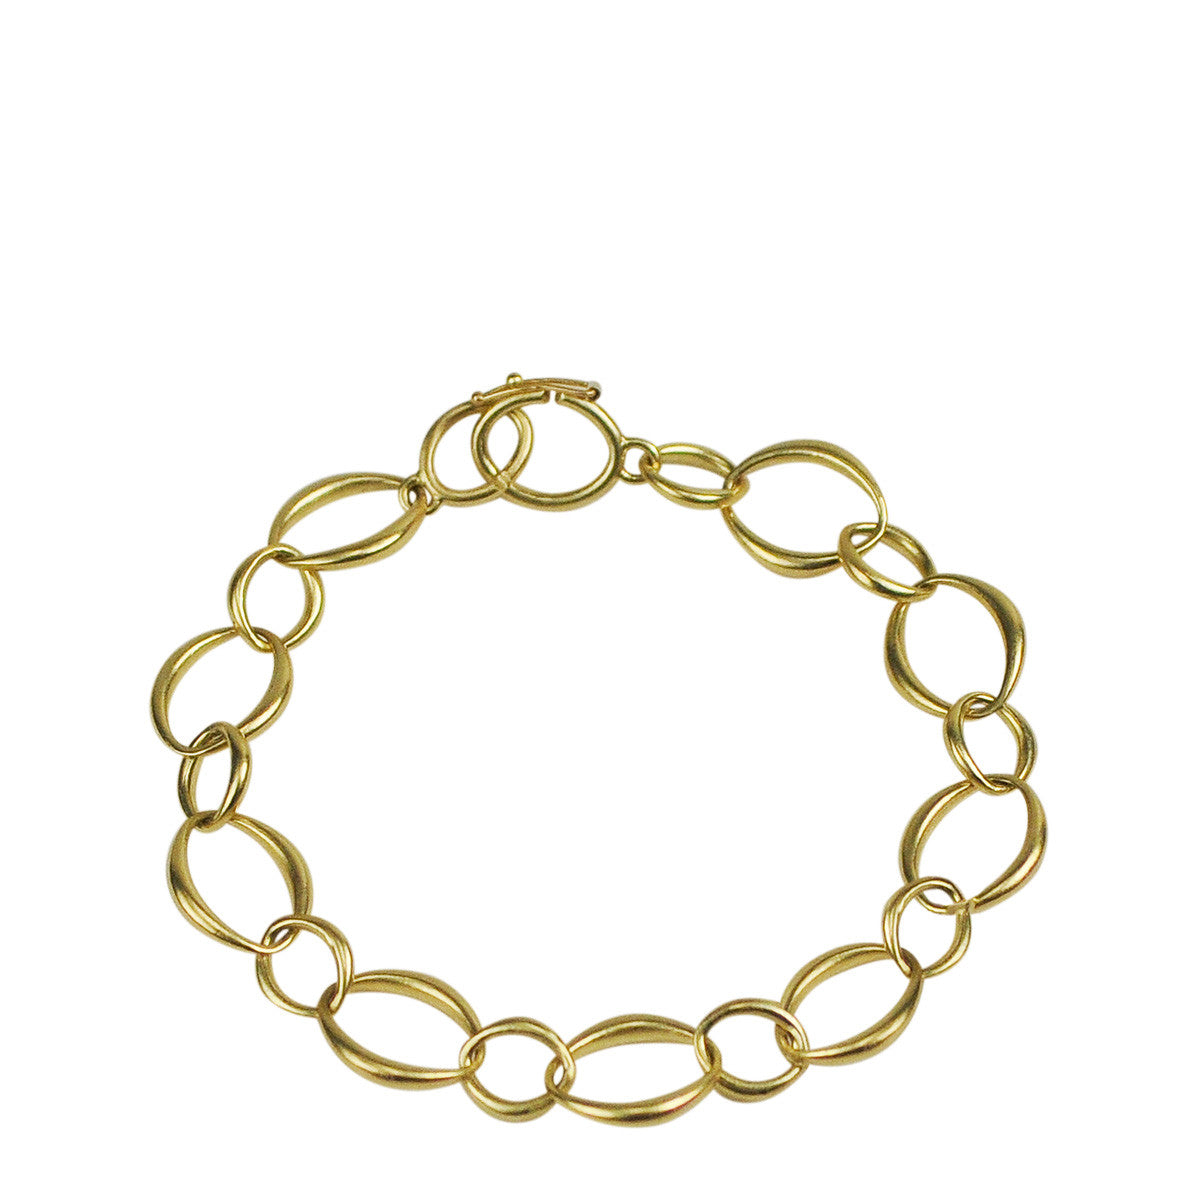 18K Gold Large Heavy O' Chain Bracelet